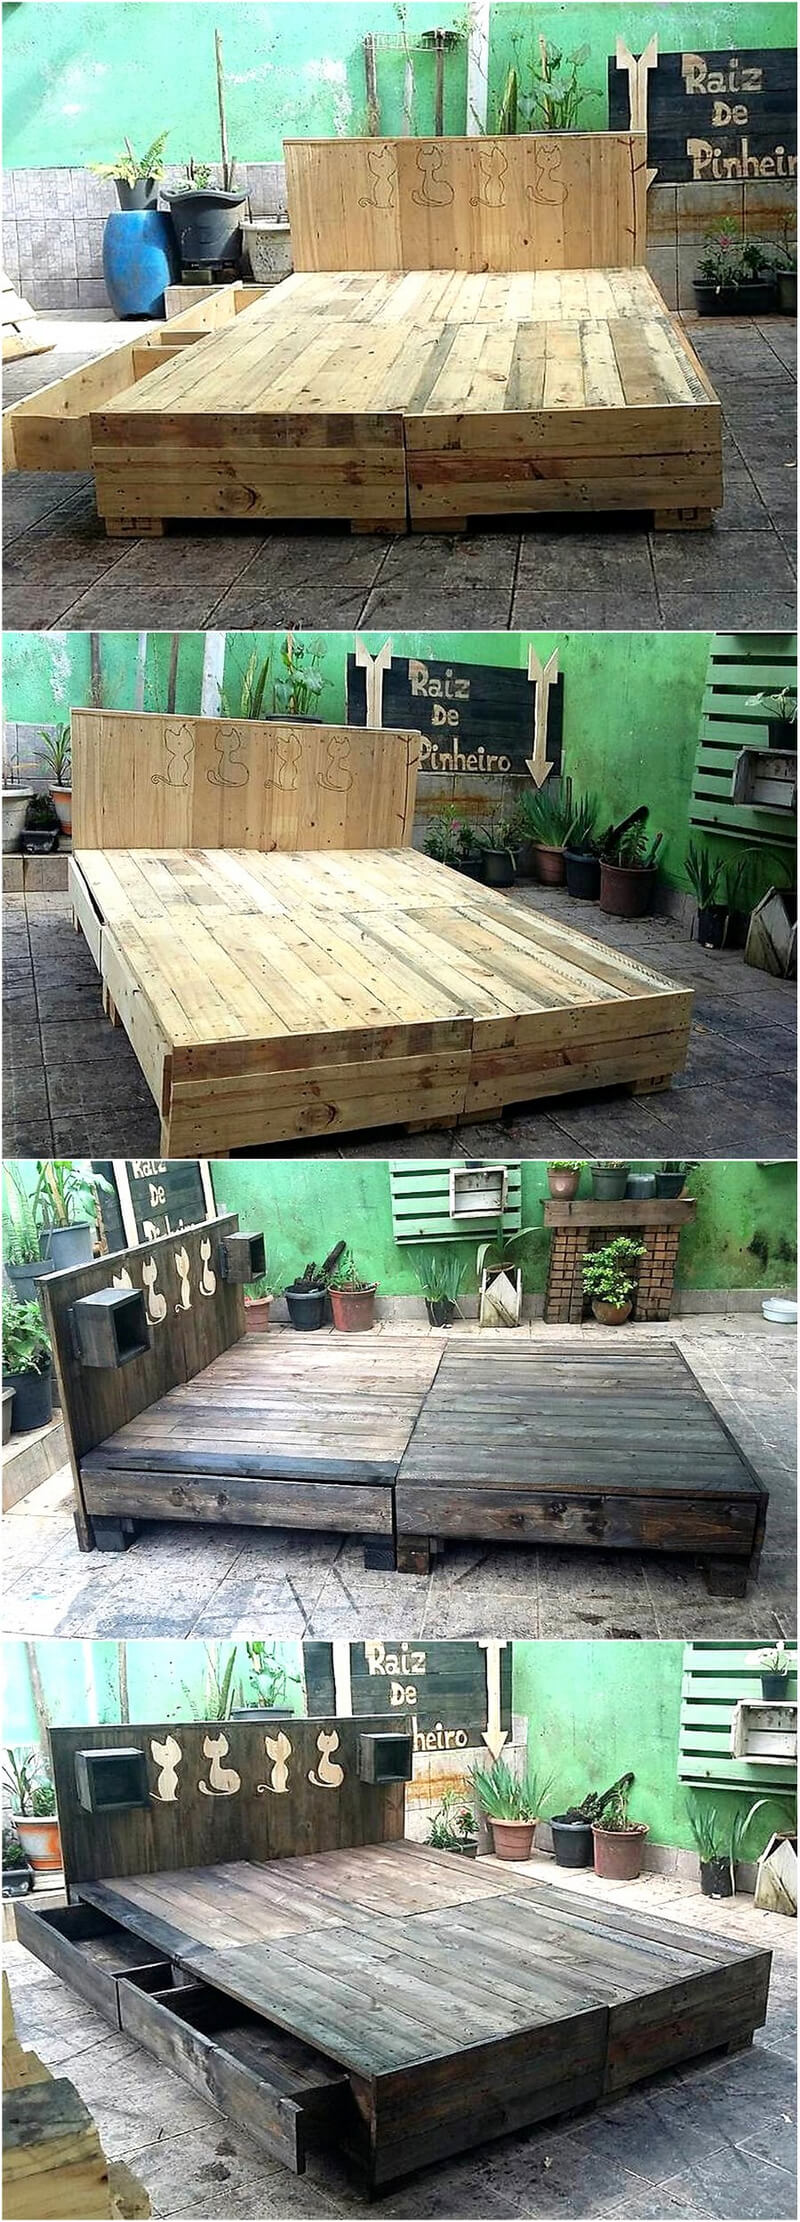 giant pallet wooden bed plan